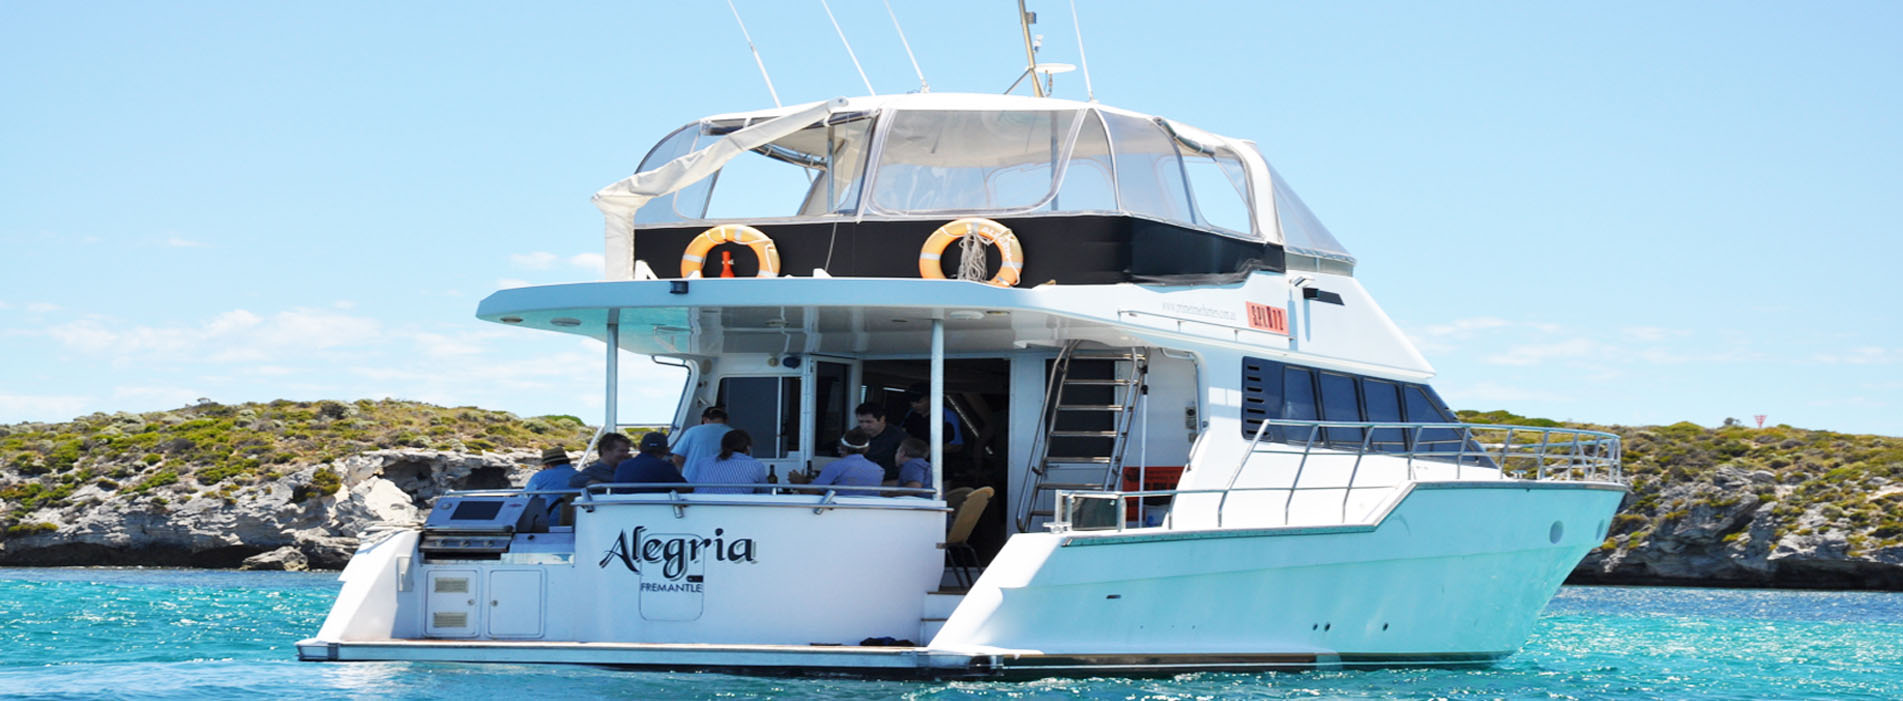 ALEGRIA close up back view boat charters